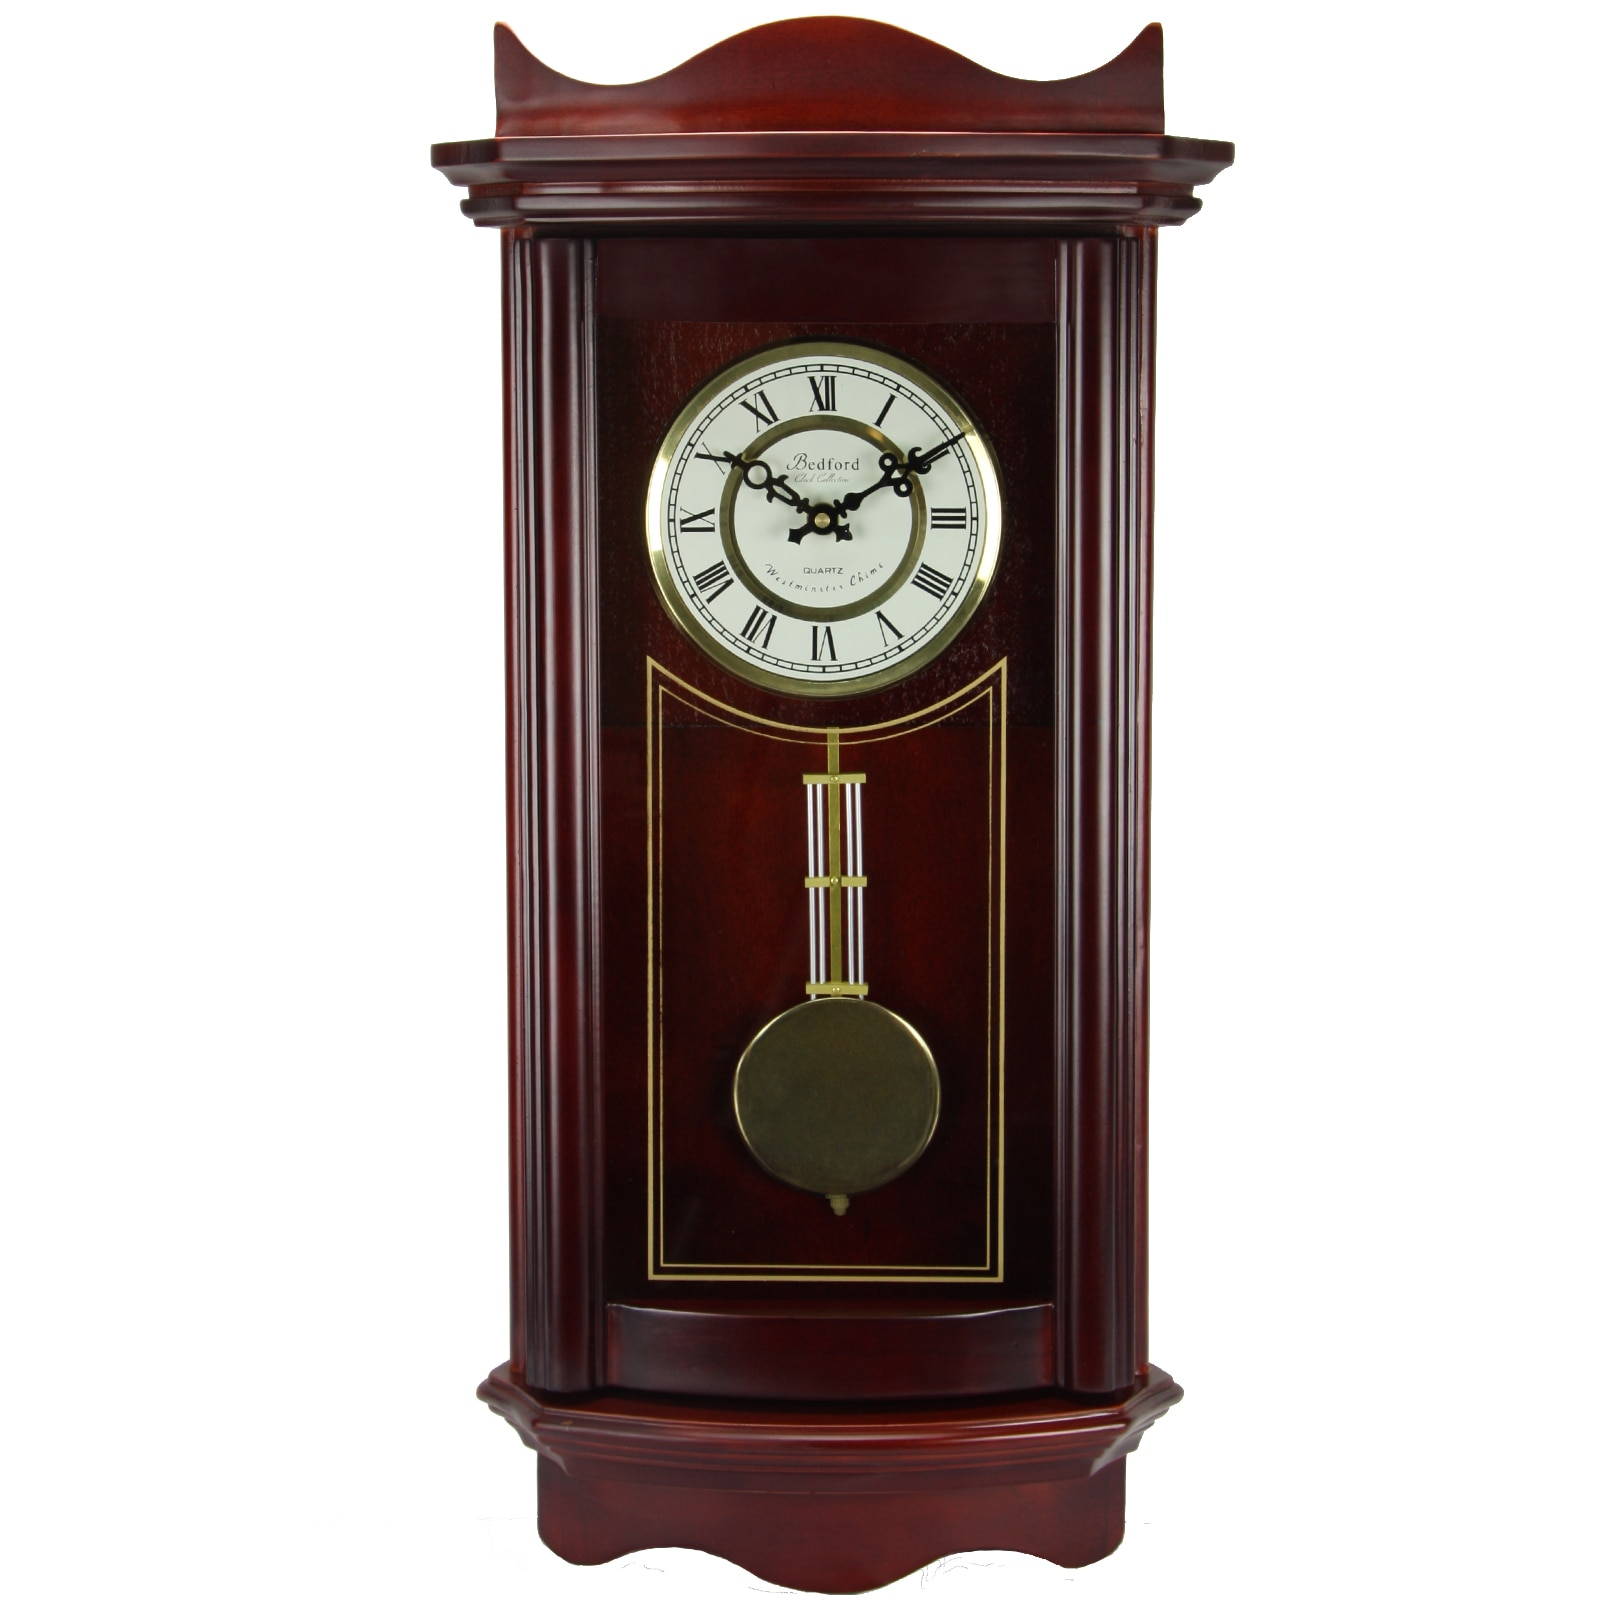 Bedford clock collection weathered cherry wood 25 wall clock with bedford clock collection weathered cherry wood 25 wall clock with pendulum walmart amipublicfo Image collections